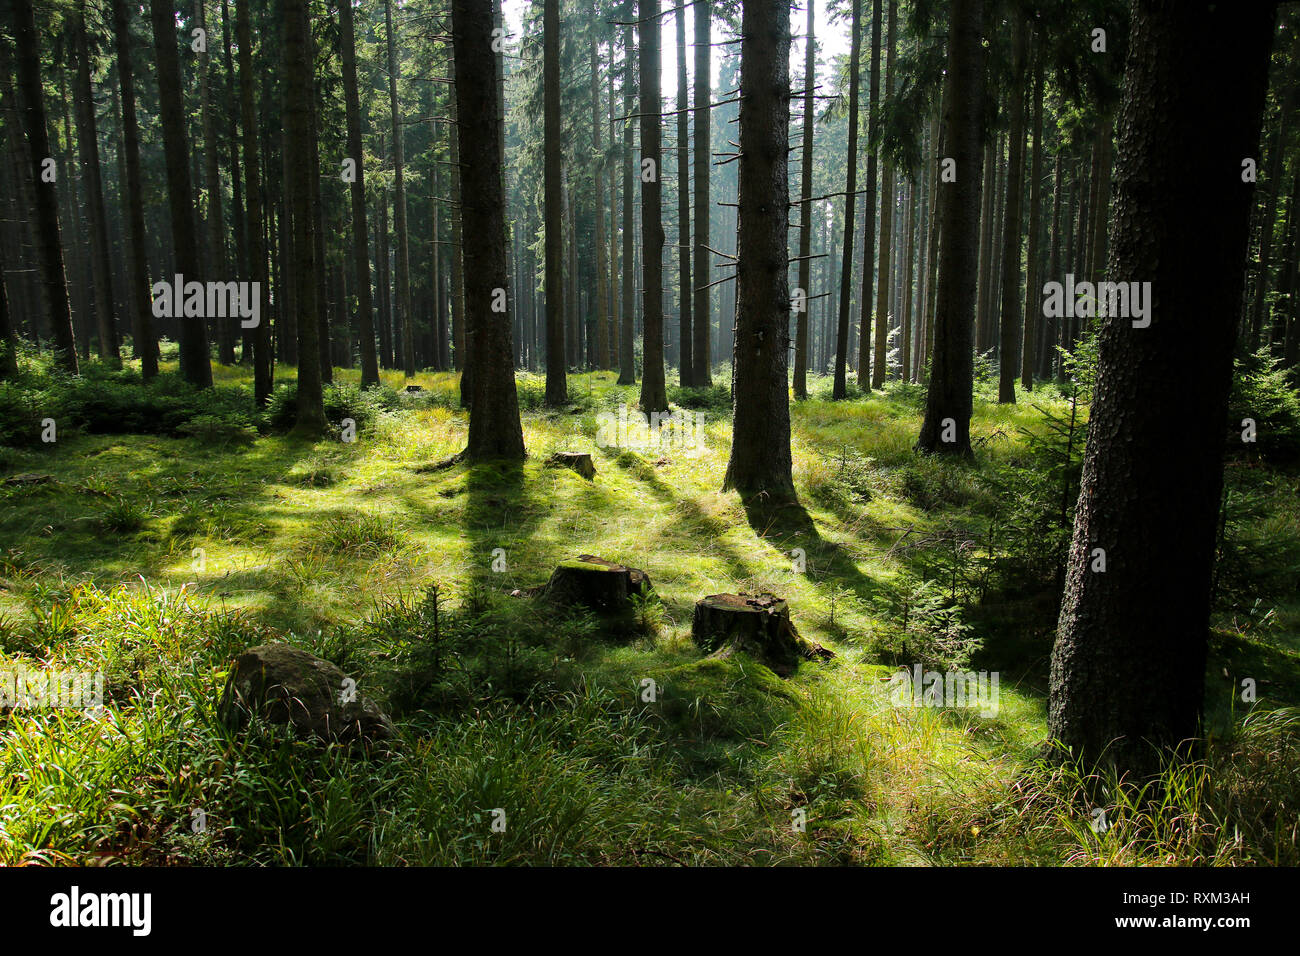 A picture from the old deep Boubín wood in Czech Republic. - Stock Image